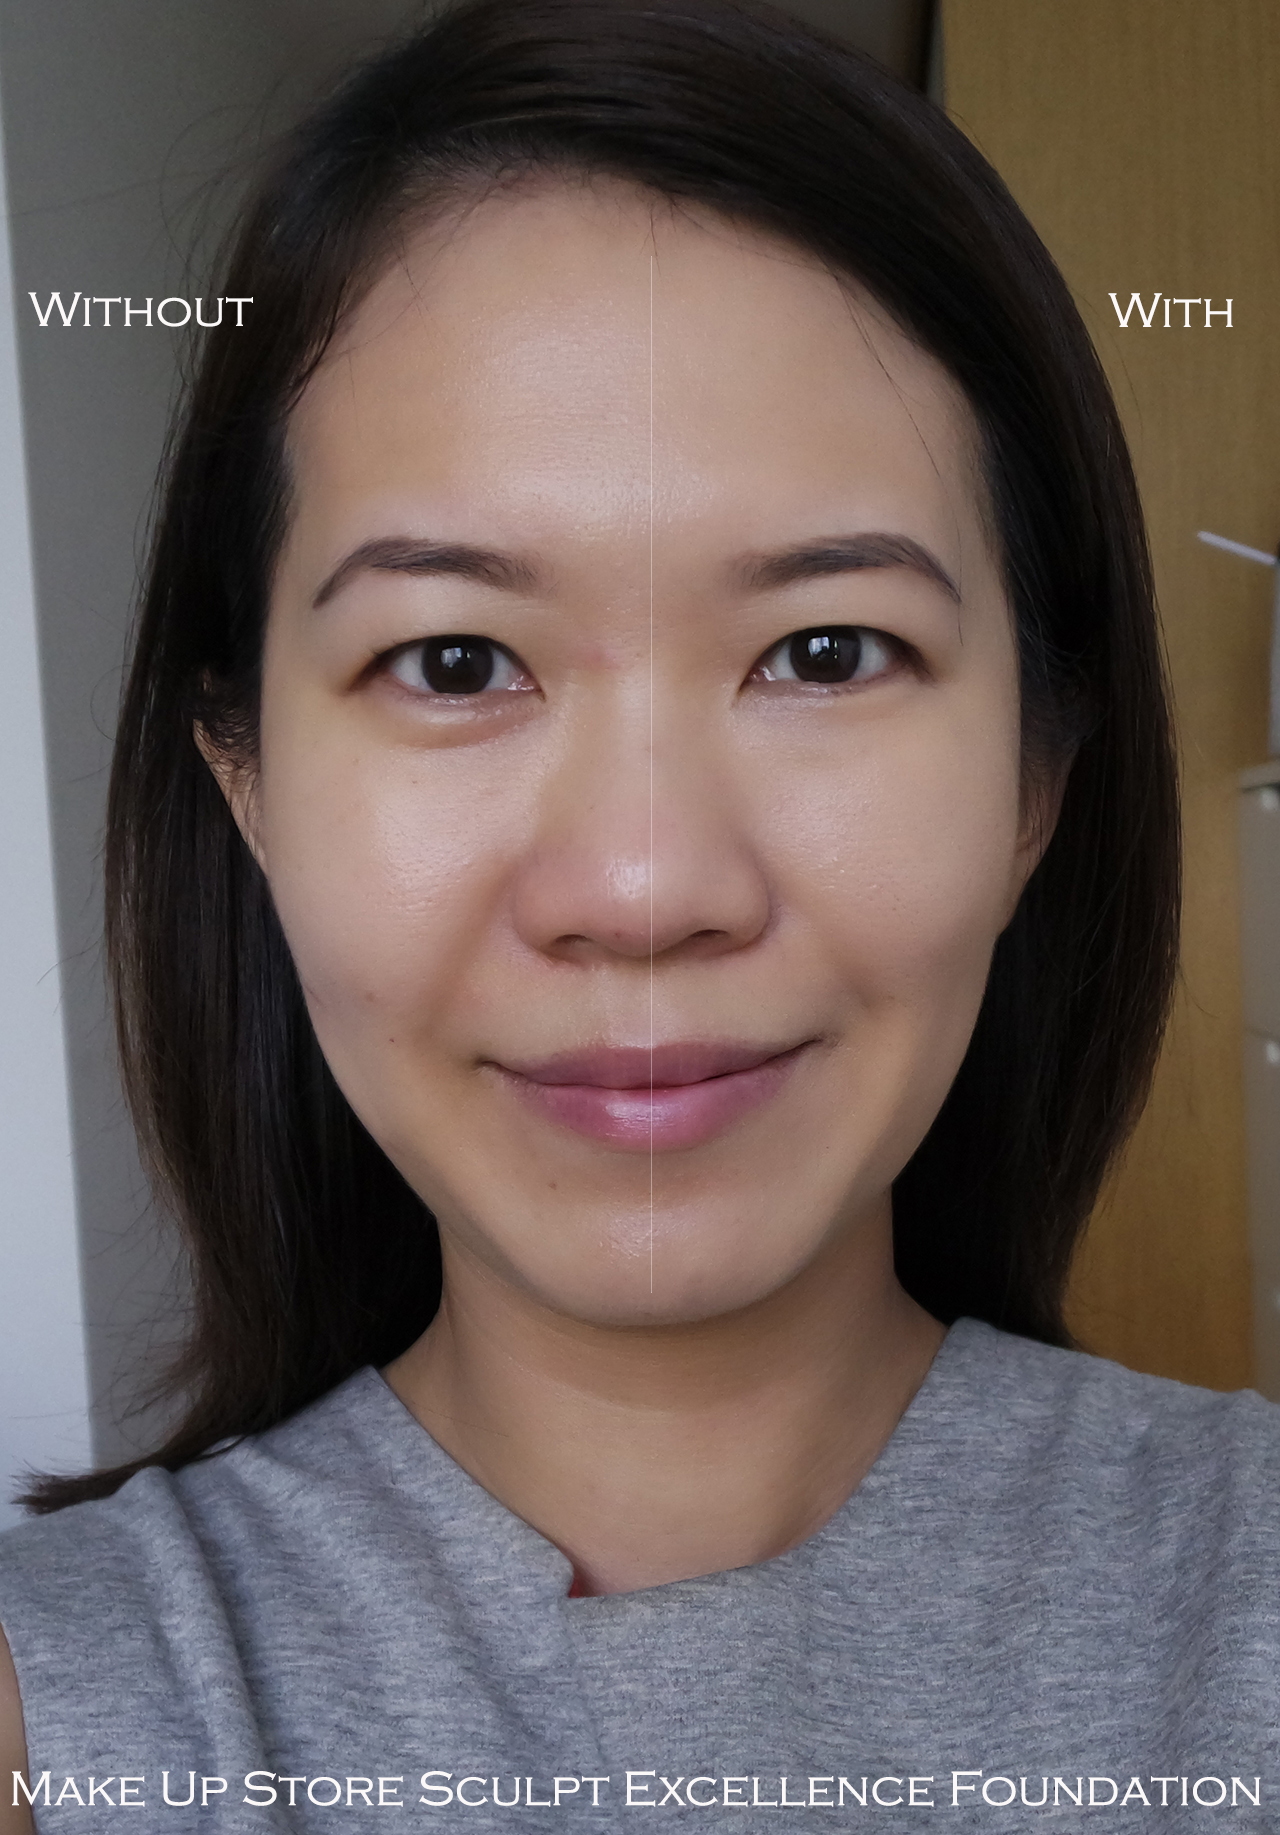 Make Up Store Sculpt Excellence Foundation before after comparison